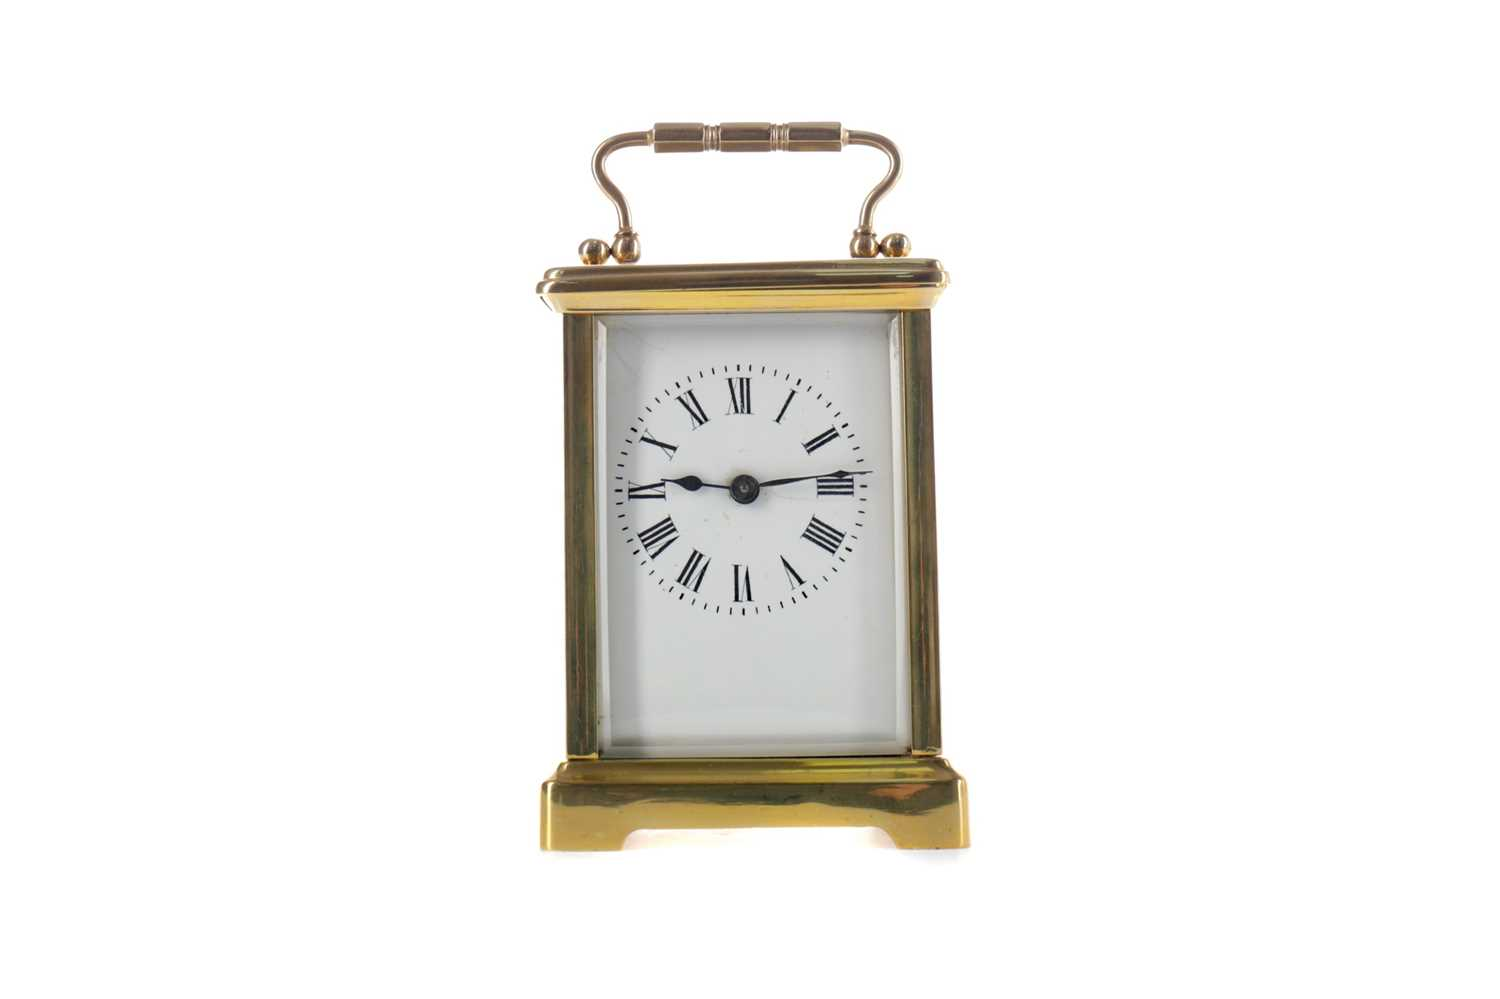 Lot 1747 - AN EARLY 20TH CENTURY CARRIAGE CLOCK